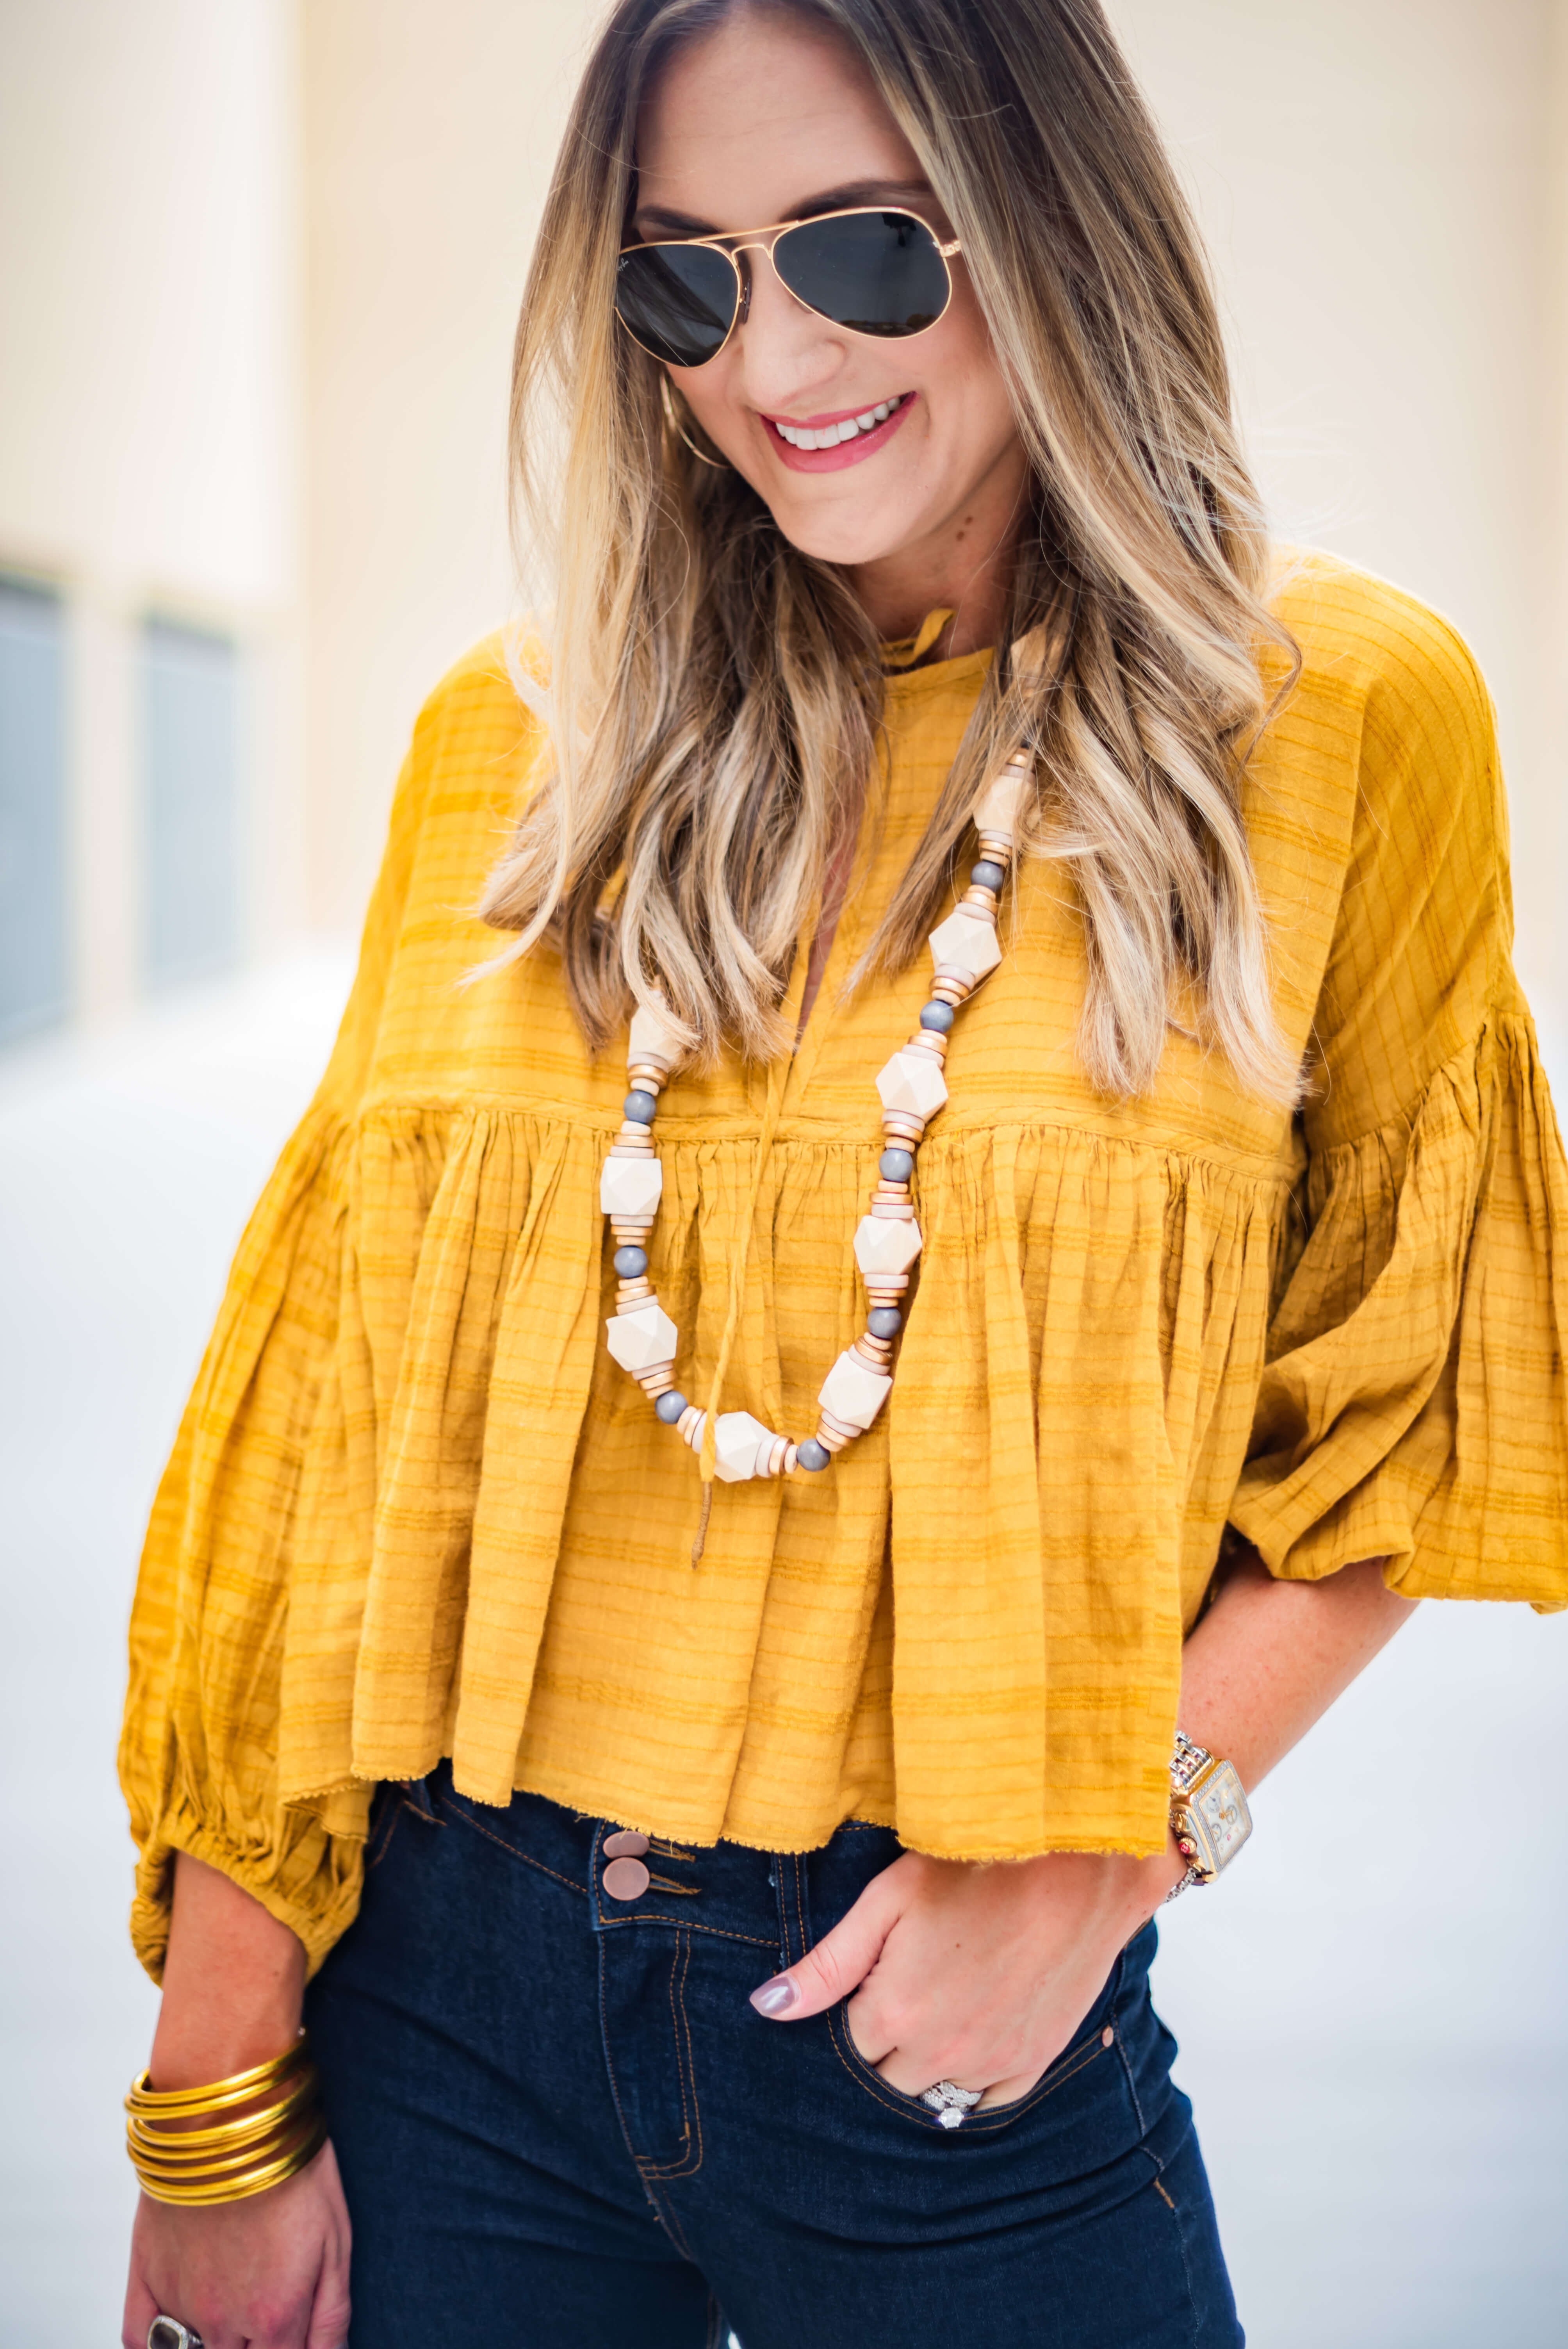 Free People Swing Top with Erin McDermott Jewelry